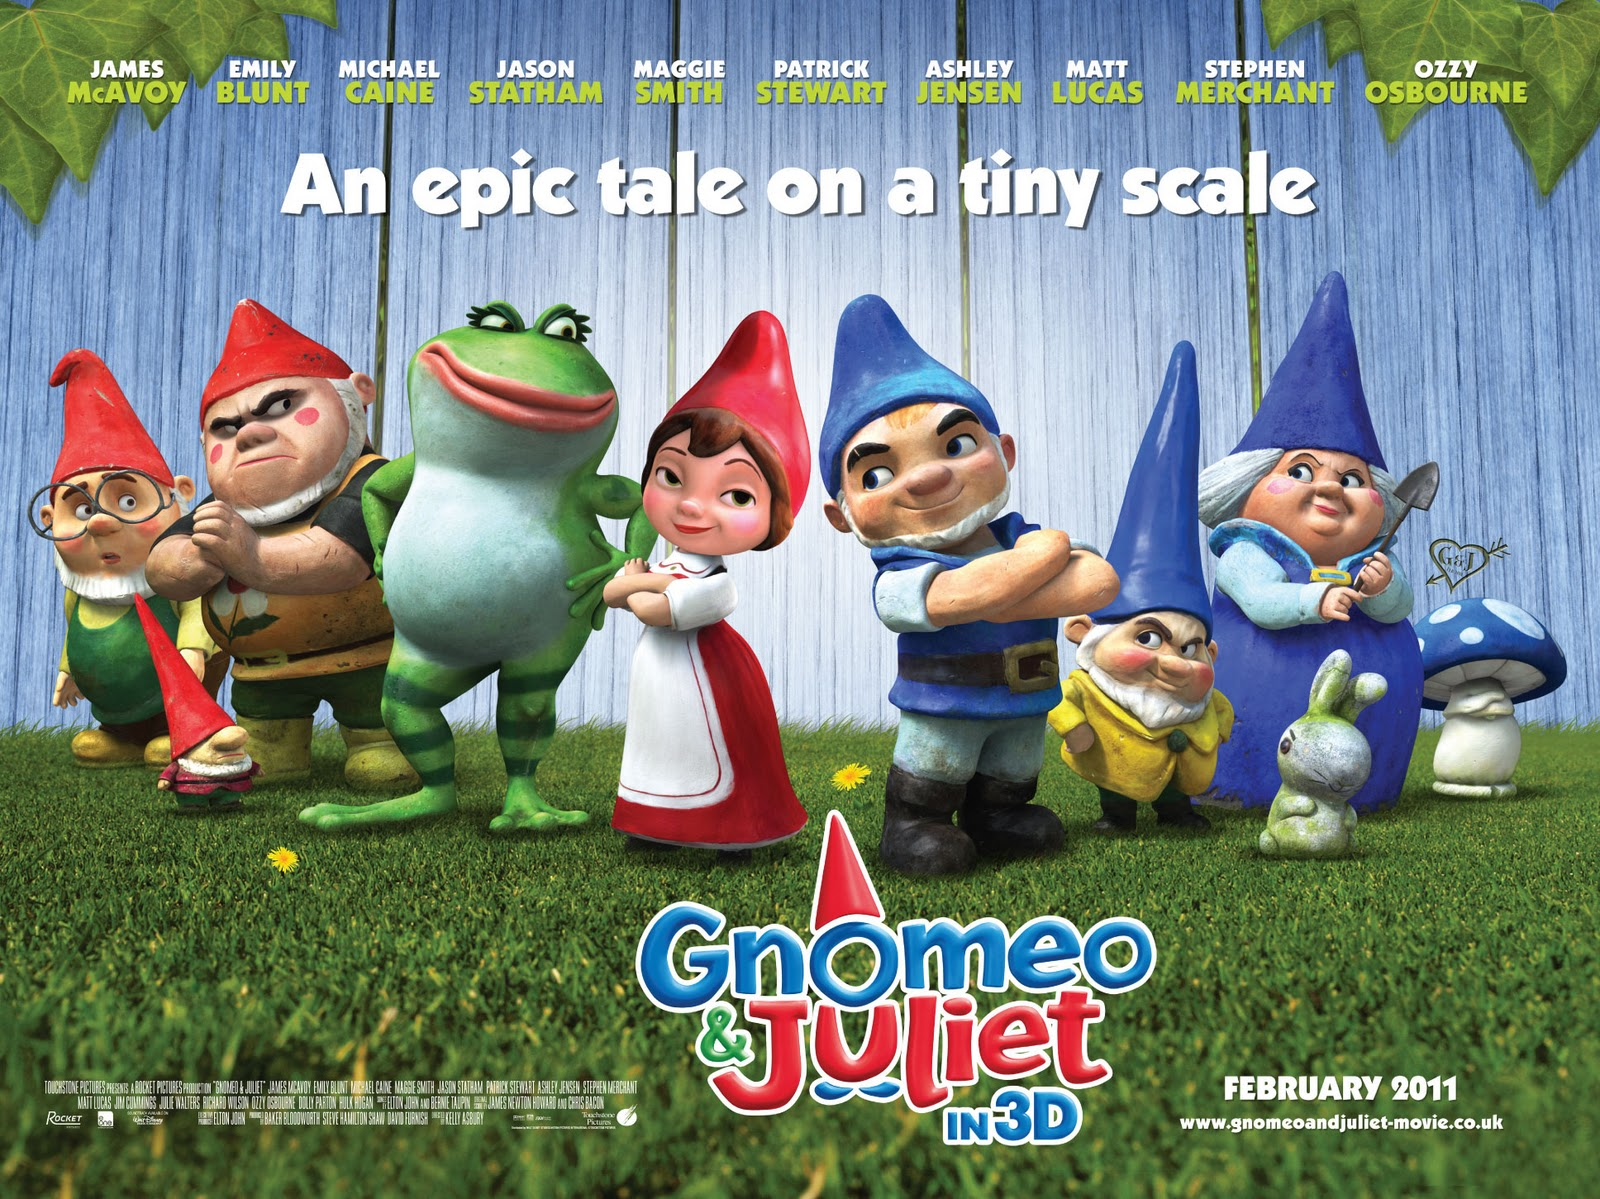 http://1.bp.blogspot.com/-UxFfM2TfelM/Taqa900vSgI/AAAAAAAAC_8/F8cFqm2KJMw/s1600/Gnomeo-and-Juliet-Movie-Poster-Wallpaper.jpg